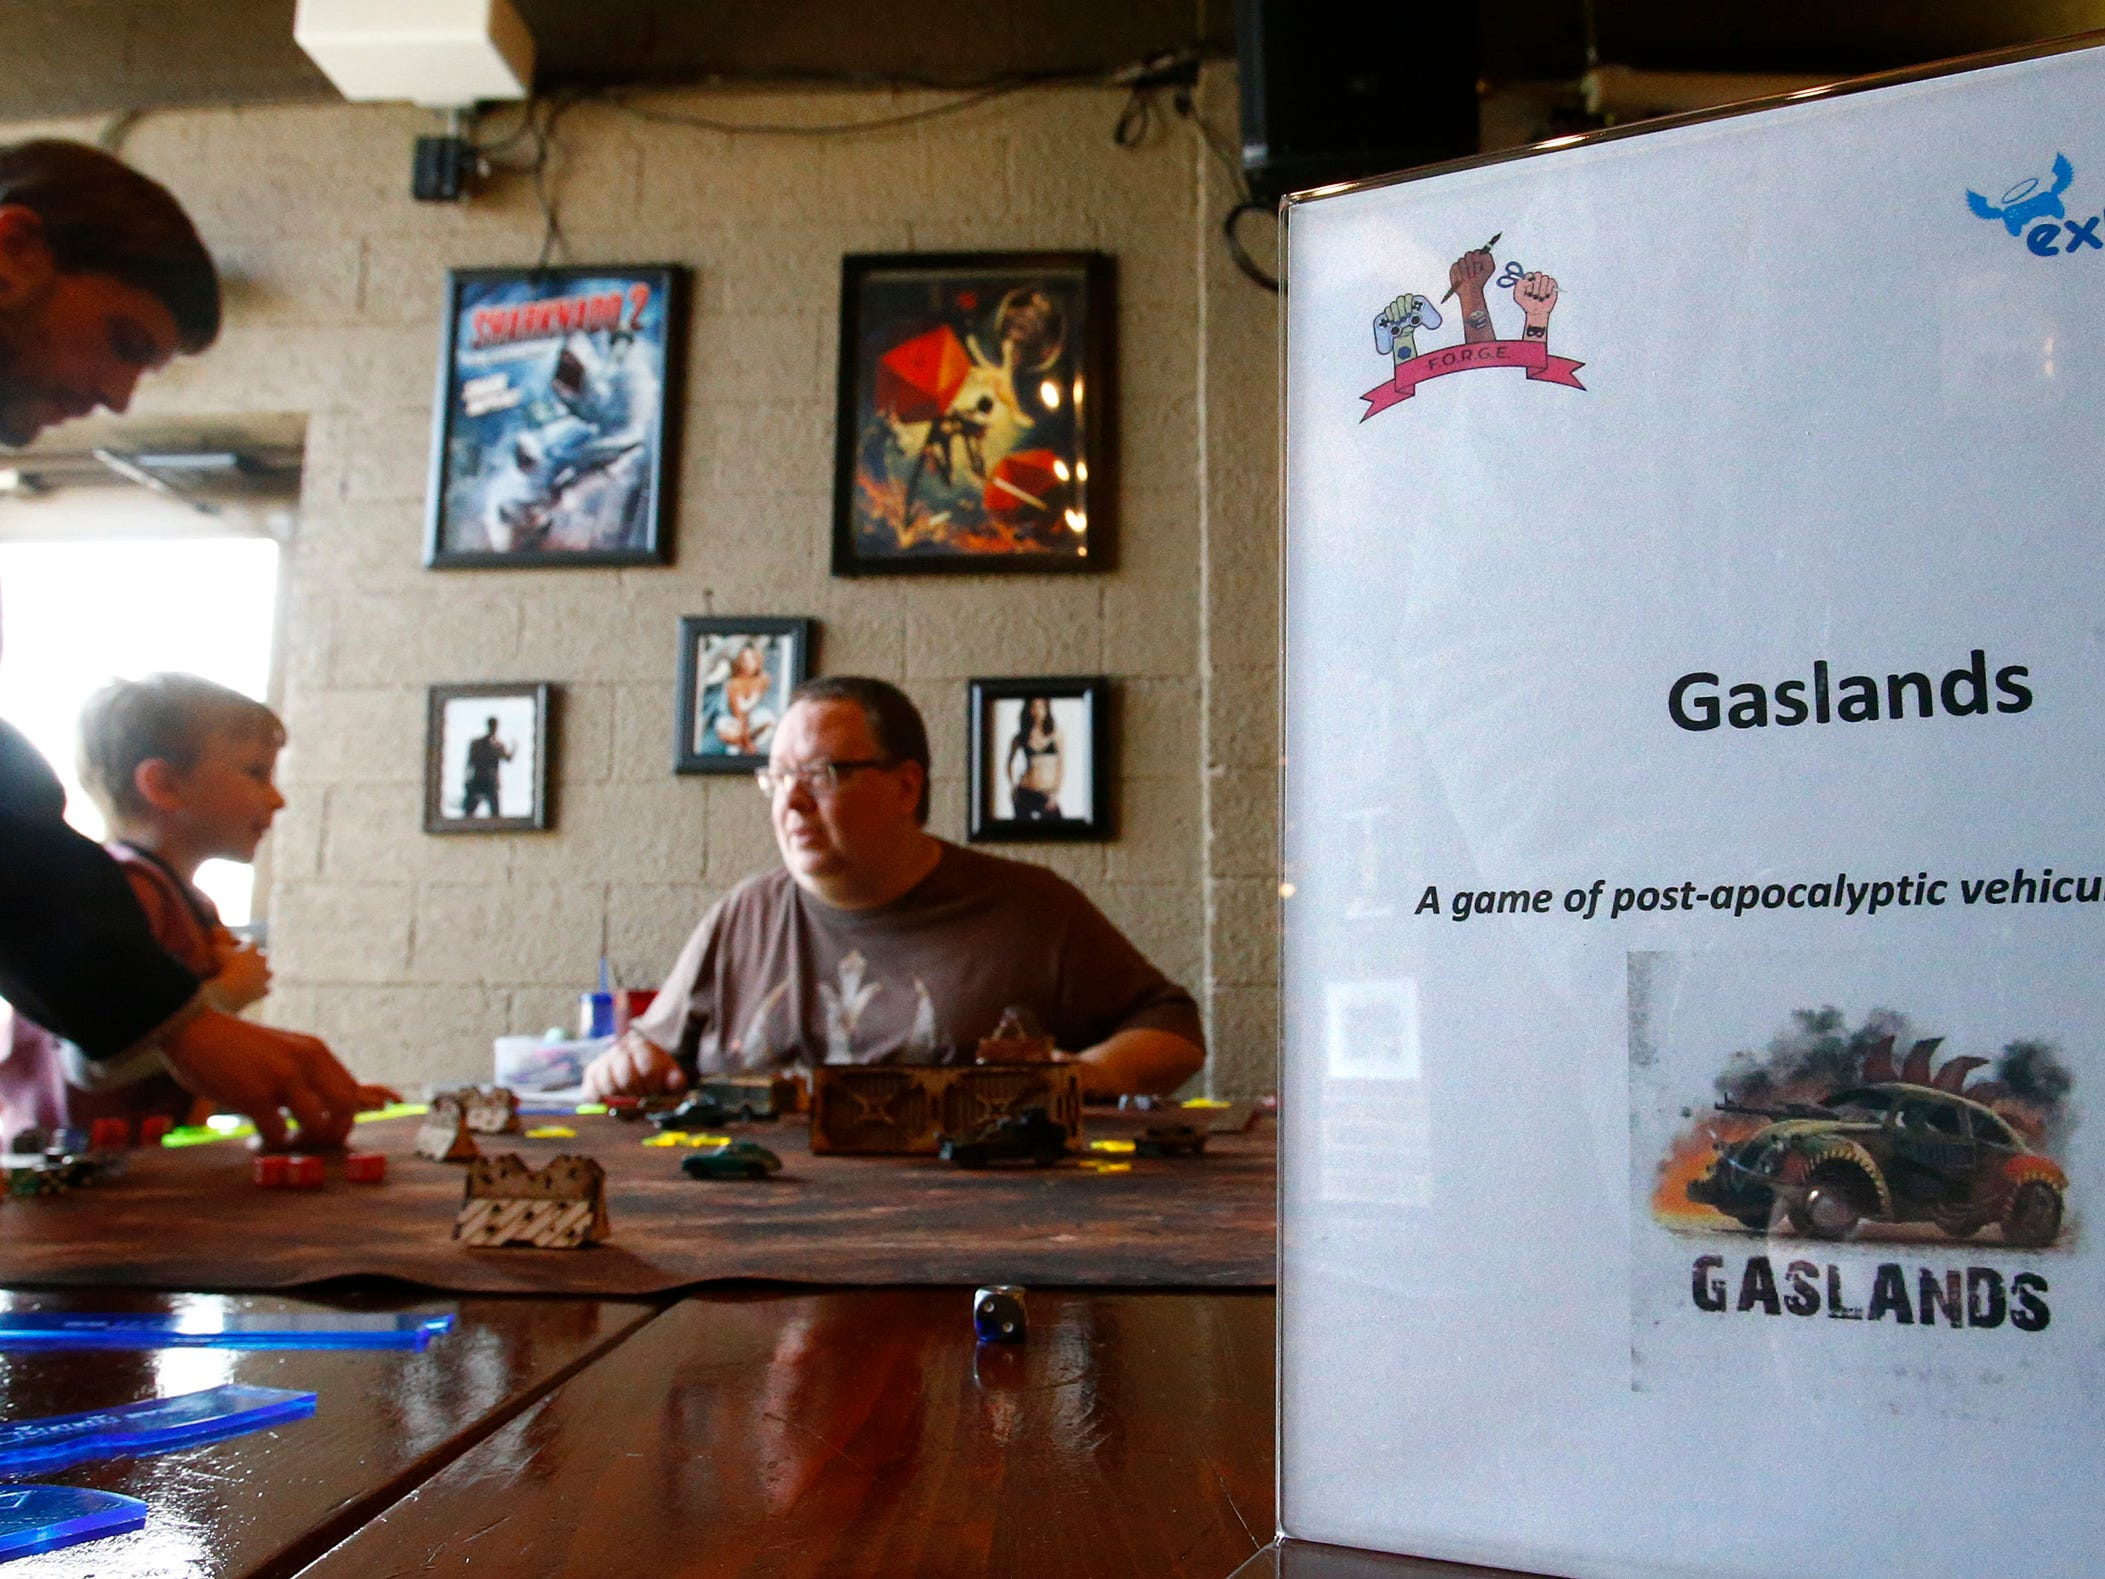 Paul Dworschack-Kinter (right) leads a round of the tabletop game Gaslands during a 12-hour Game-A-Thon hosted by FORGE, Feminist Organization for Rebel Geek Empowerment, to benefit Children's Hospital of Wisconsin at 42 Ale House in St. Francis on Nov. 3.